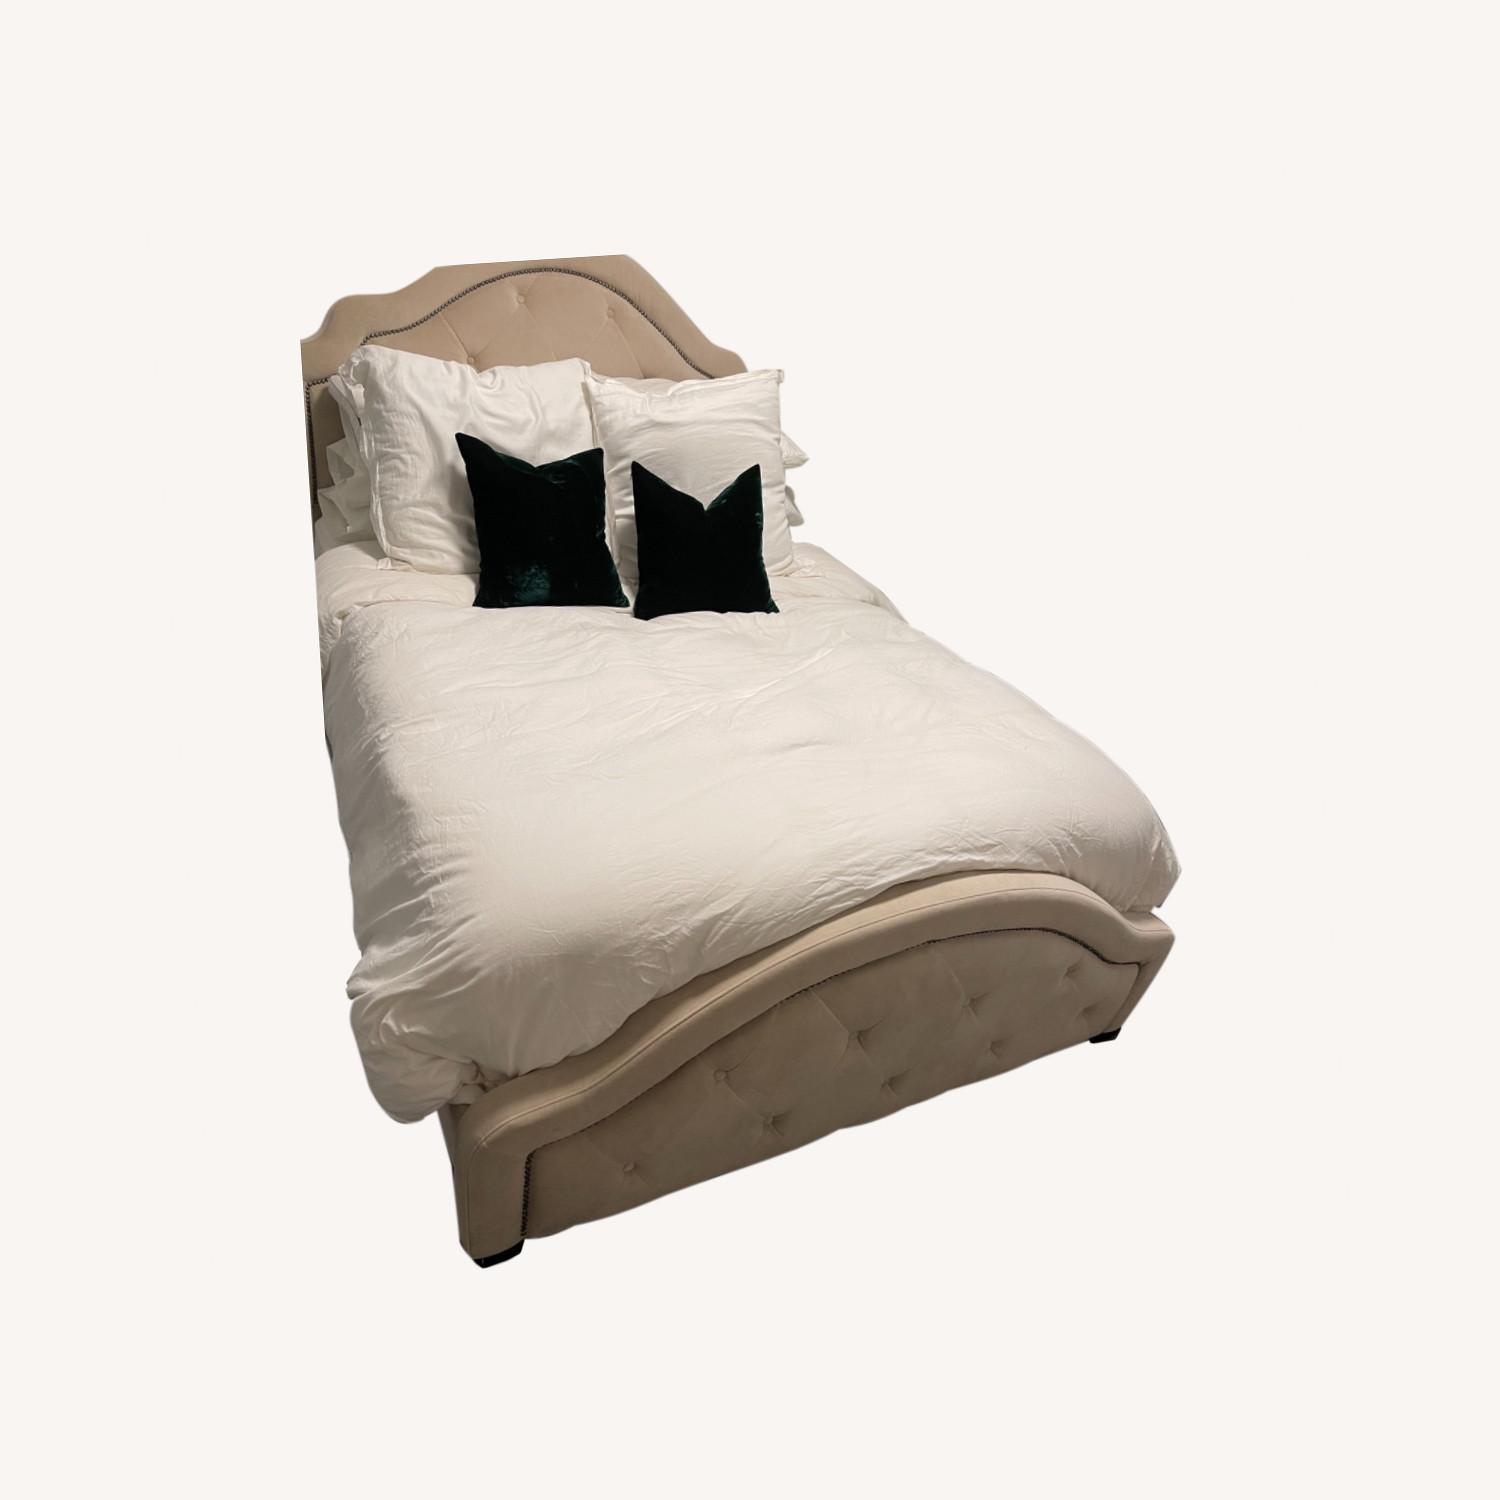 Raymour & Flanigan Queen Natural Bed Frame - image-0